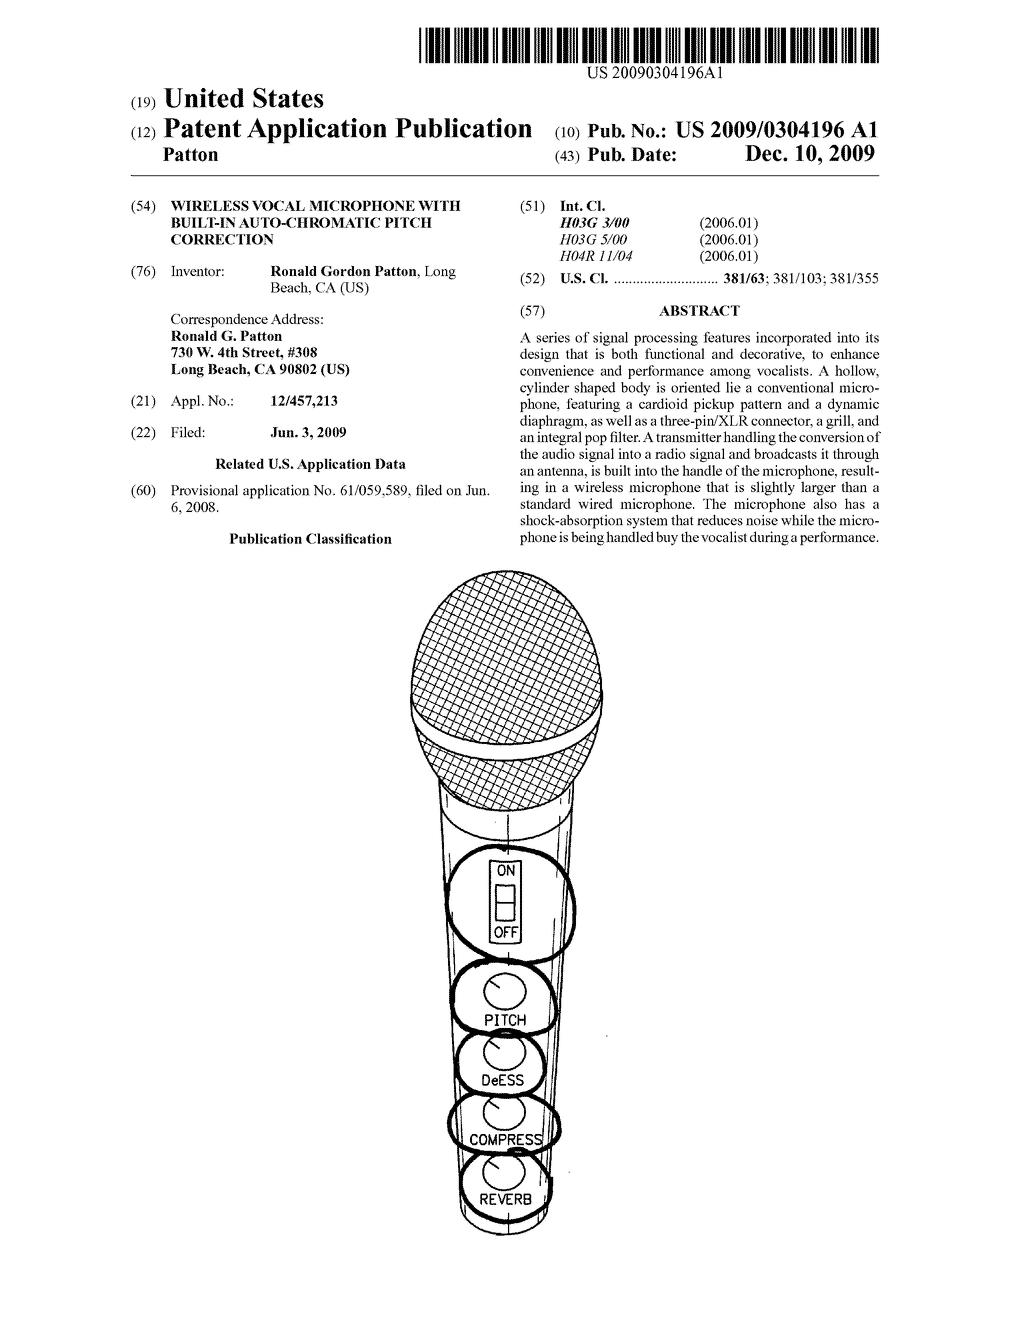 Wireless vocal microphone with built-in auto-chromatic pitch correction - diagram, schematic, and image 01